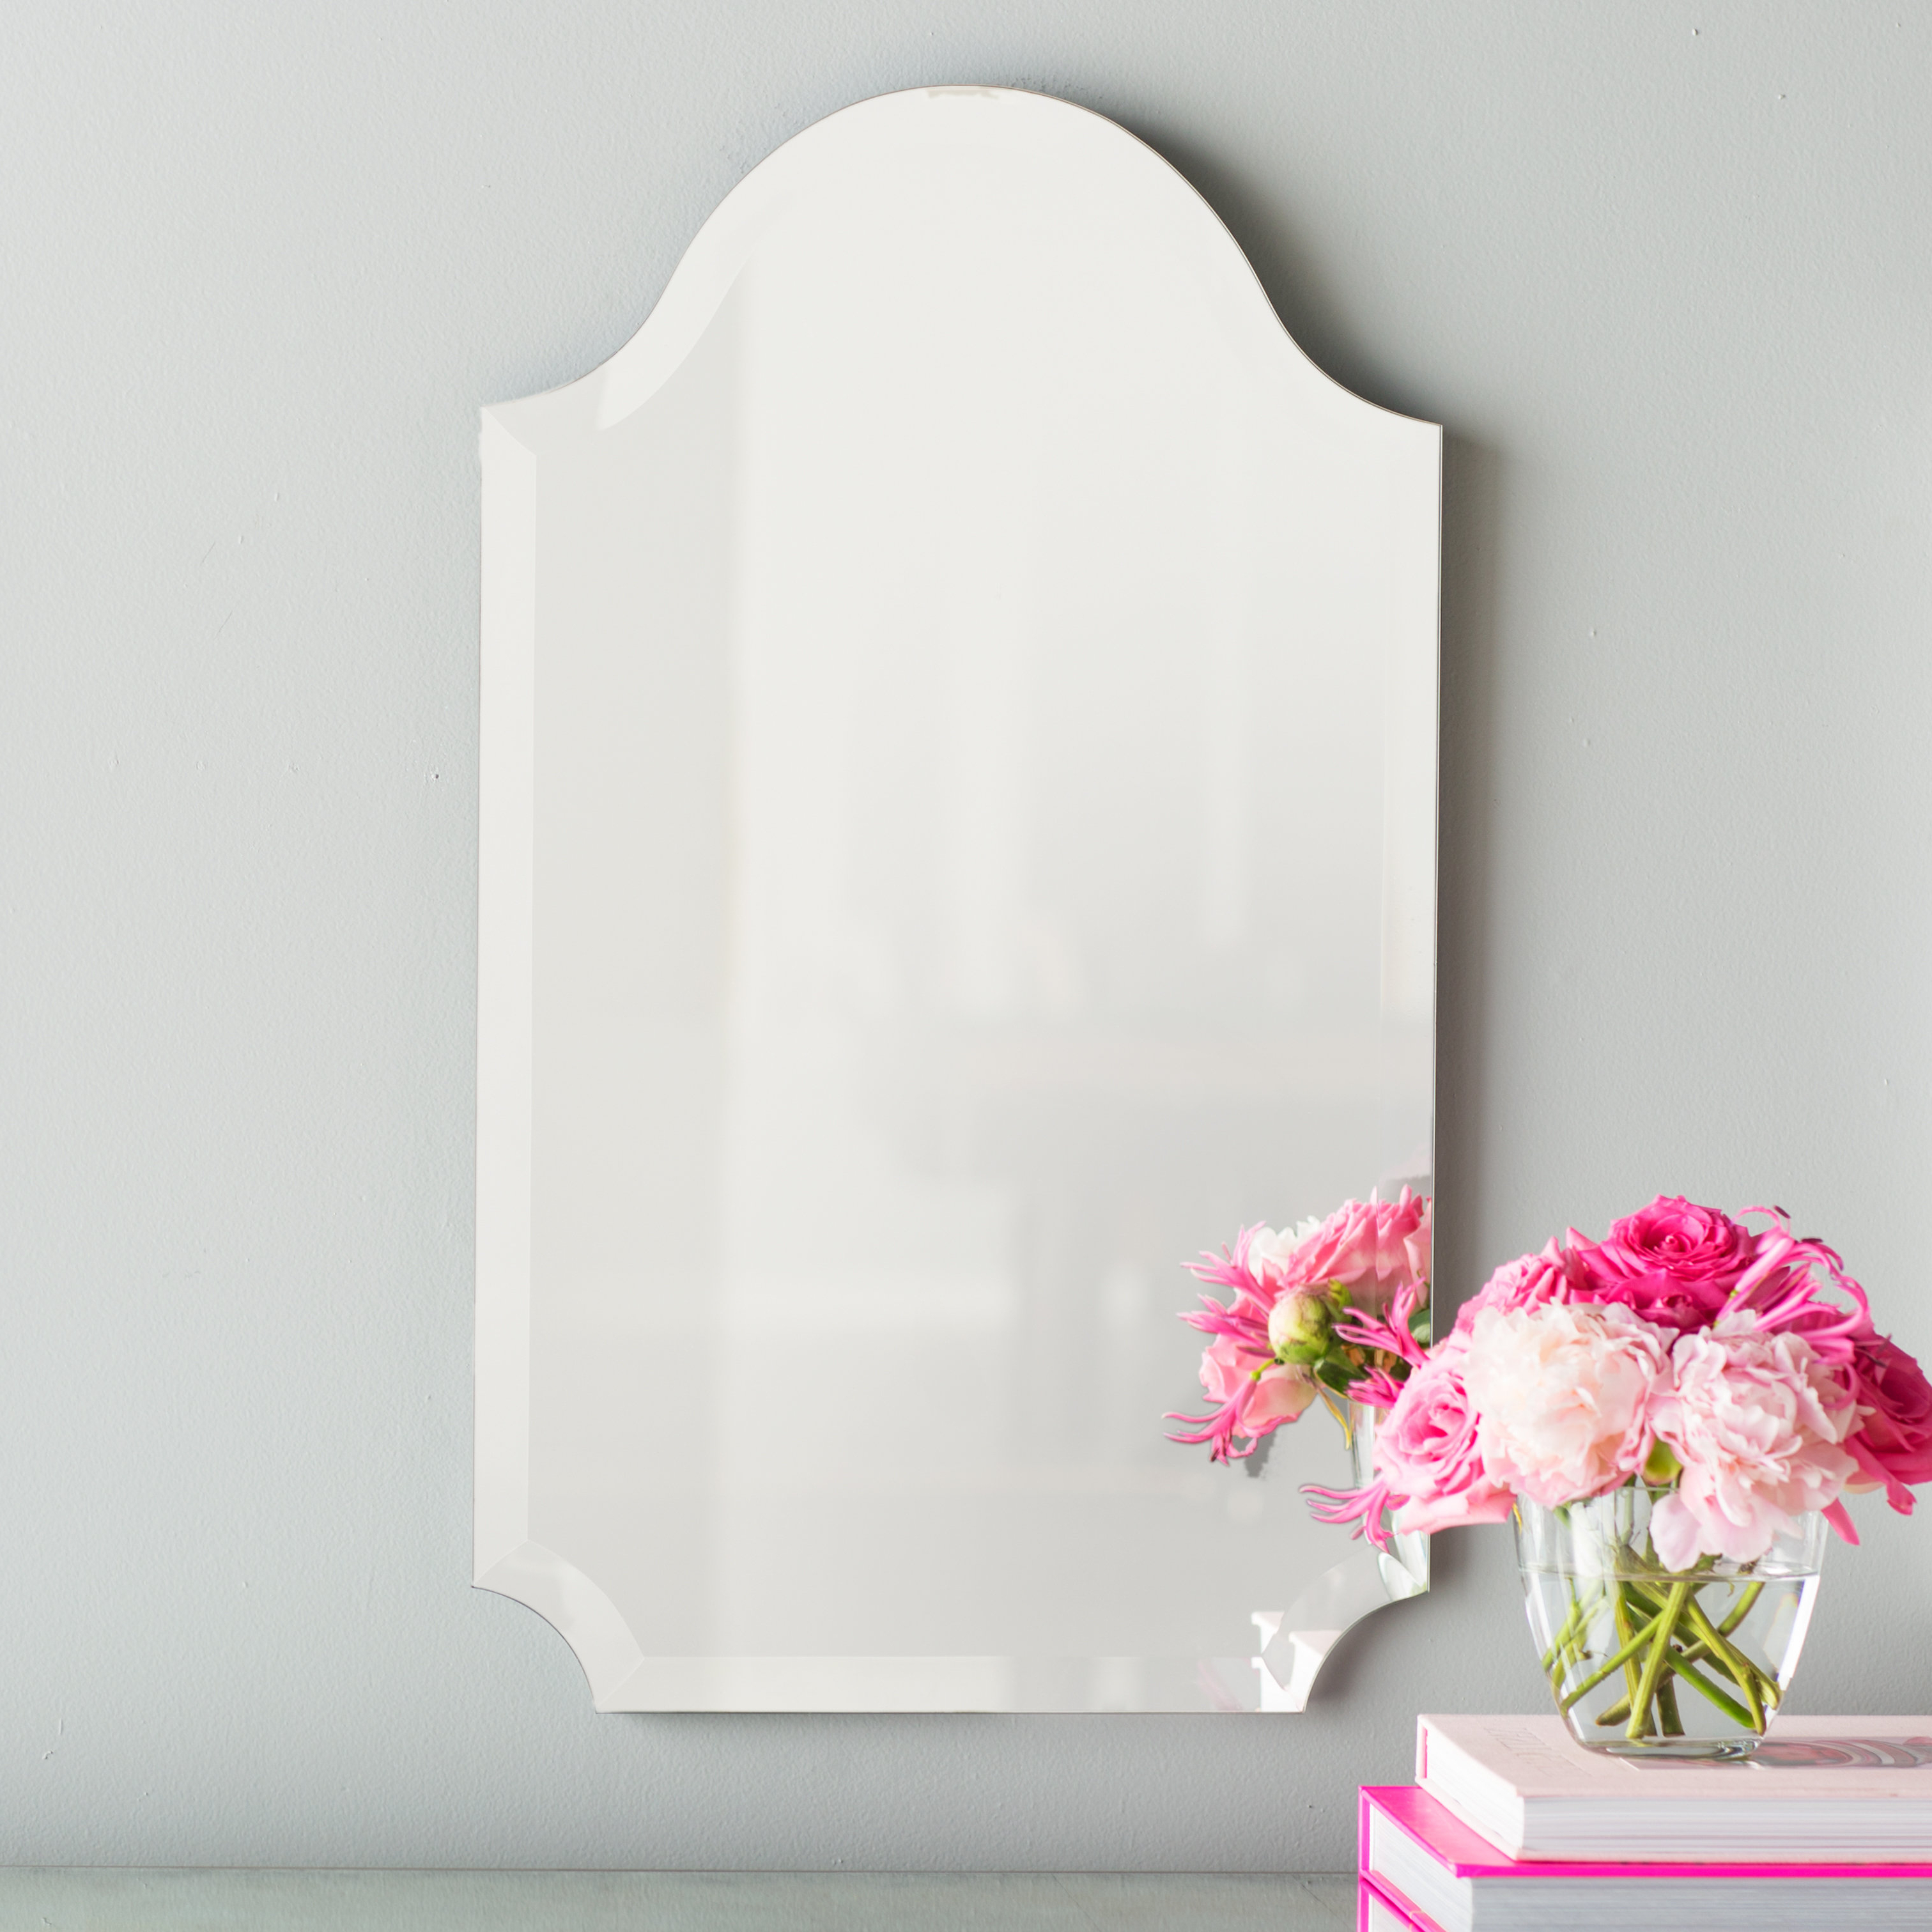 Dariel Tall Arched Scalloped Wall Mirrors Pertaining To 2020 Dariel Tall Arched Scalloped Wall Mirror (View 1 of 20)